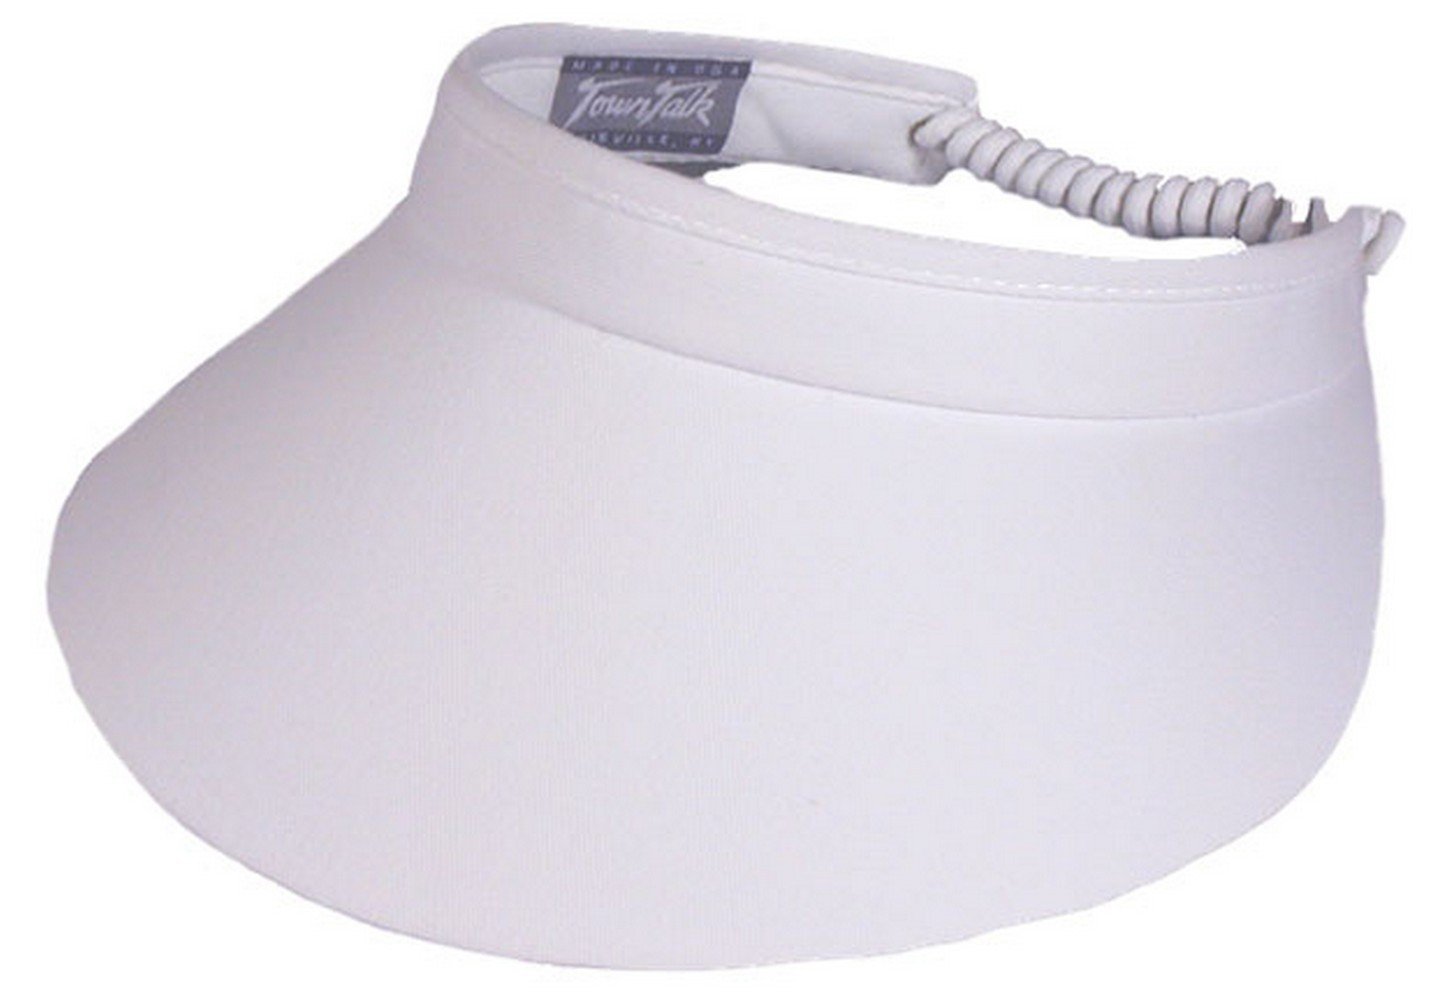 Town Talk Twisted Cord 4-inch Visor-One Size Fits All-White